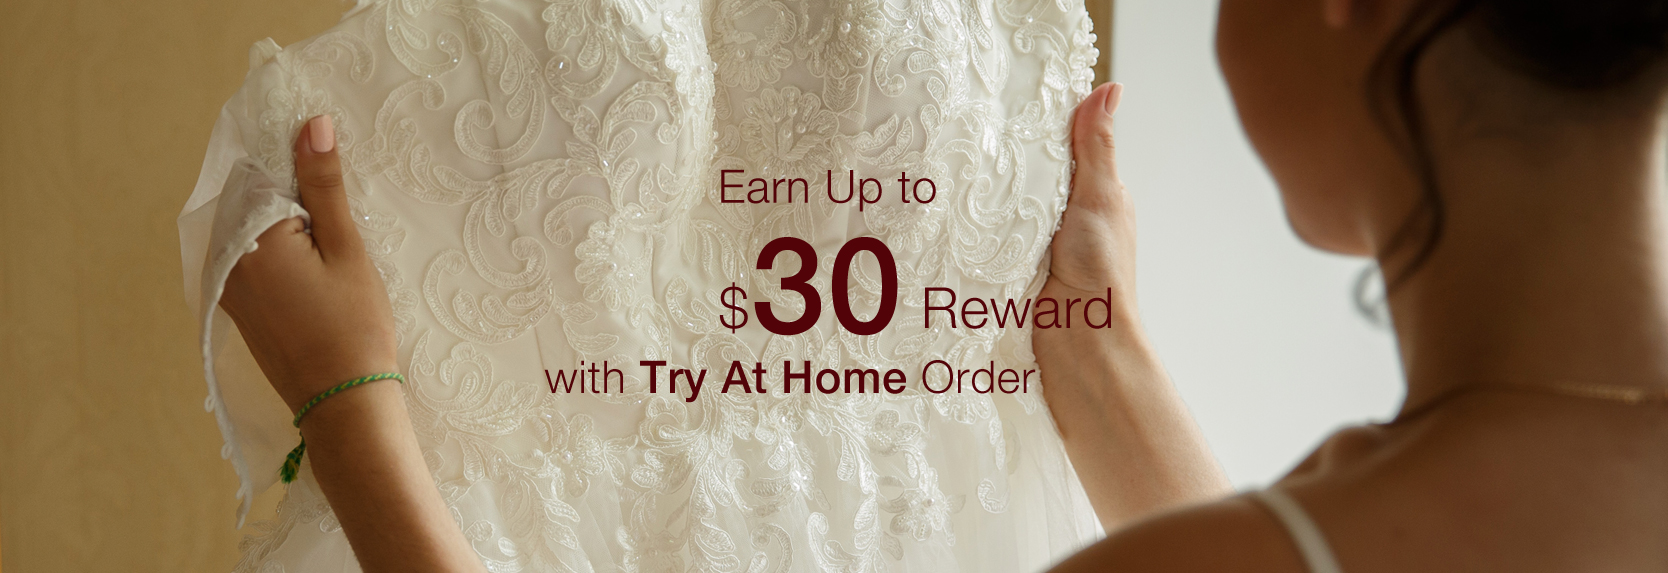 Earn $30 Now with Try At Home